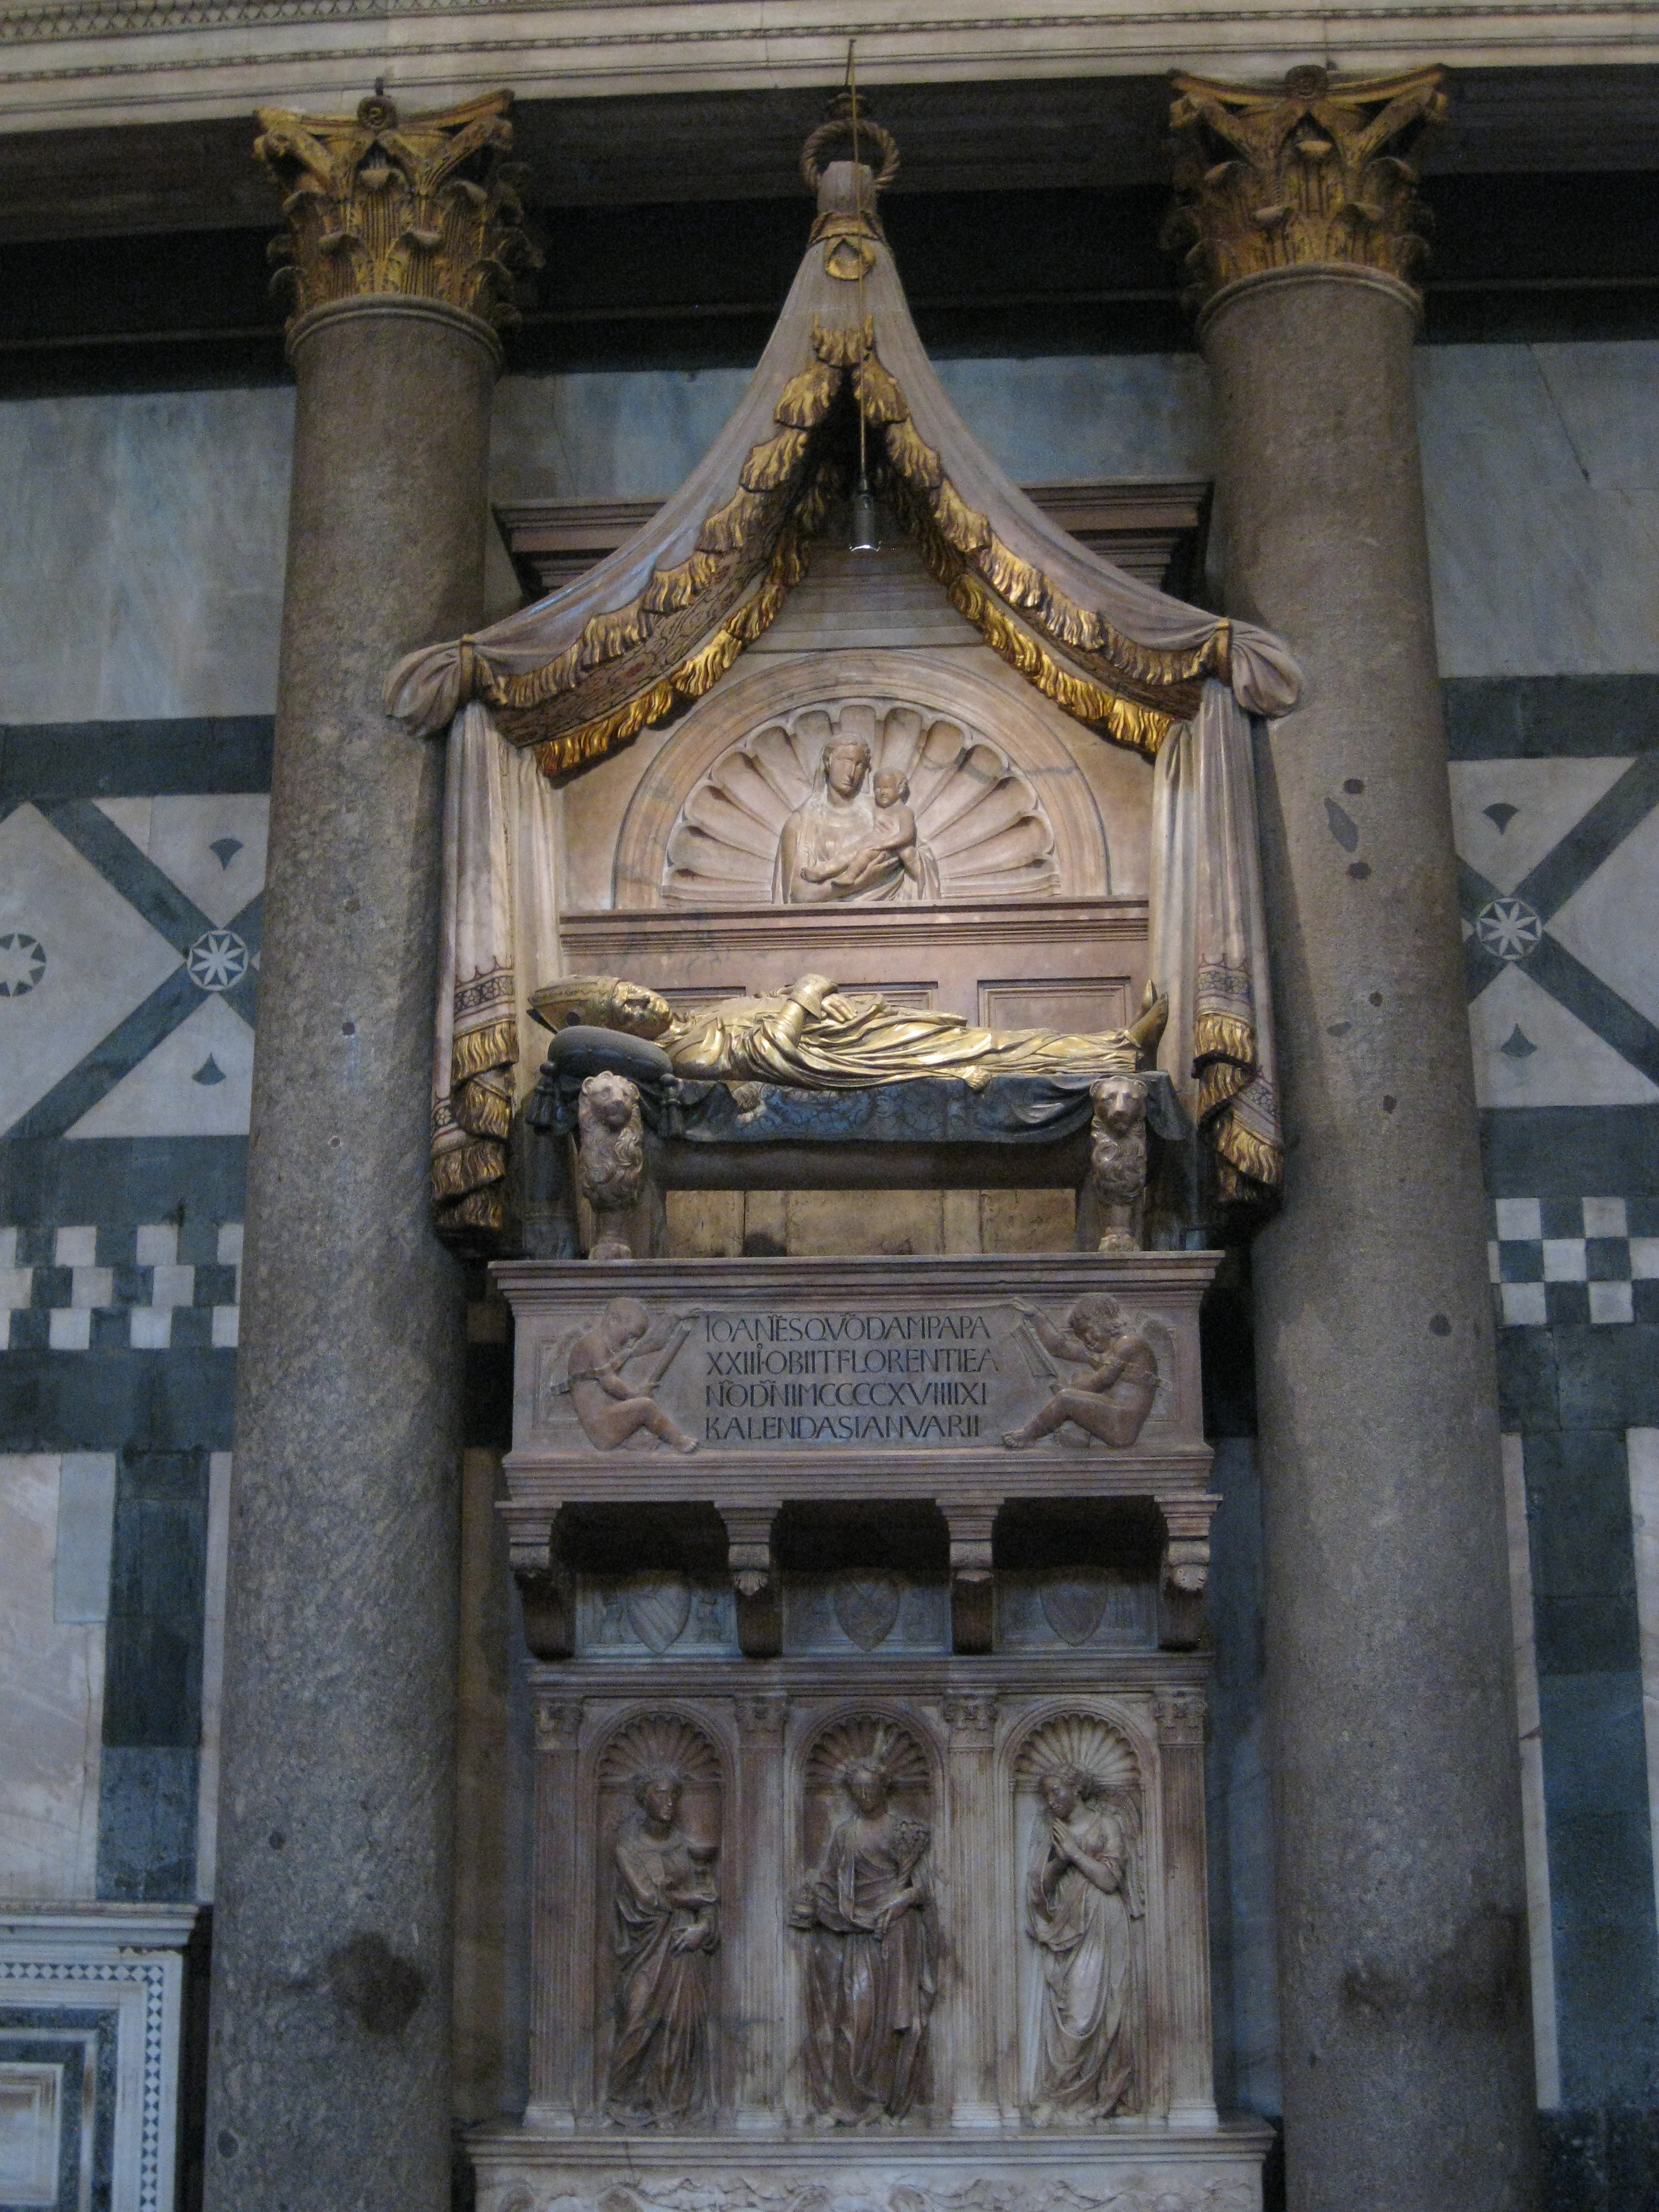 The tomb of antipope John XXIII